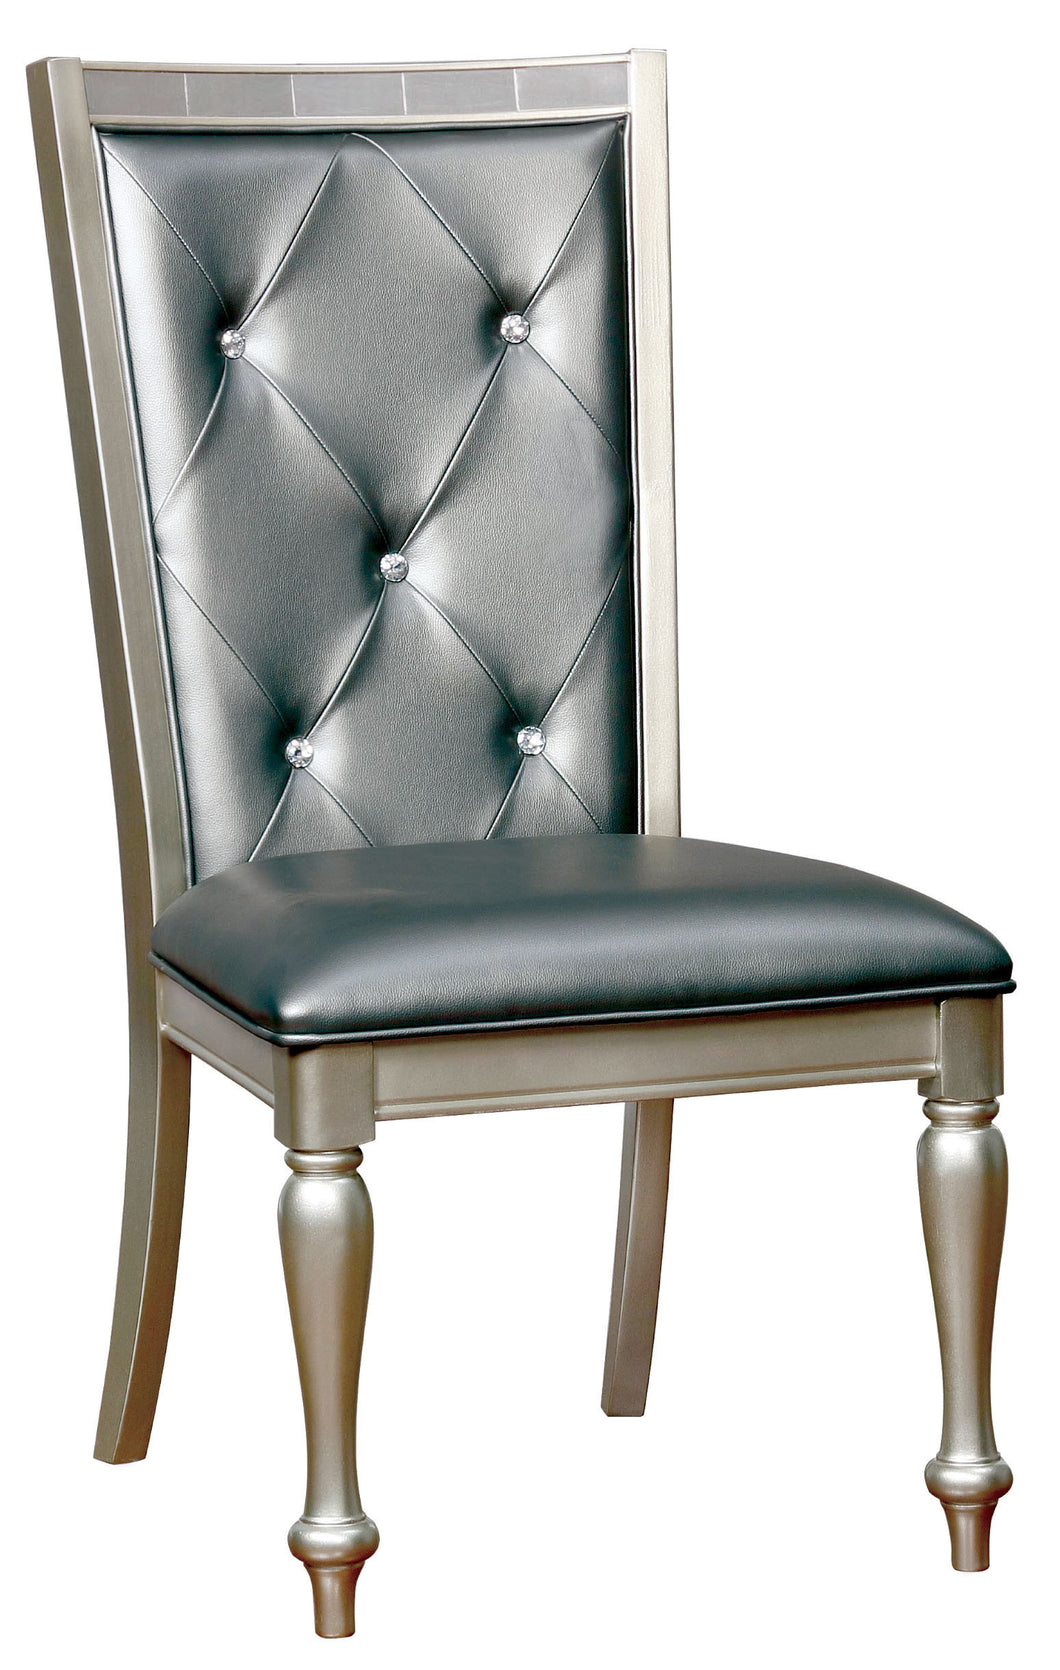 Arynah Contemporary Button Tufted Leatherette Dining Chair, Silver Gray (Set of 2)